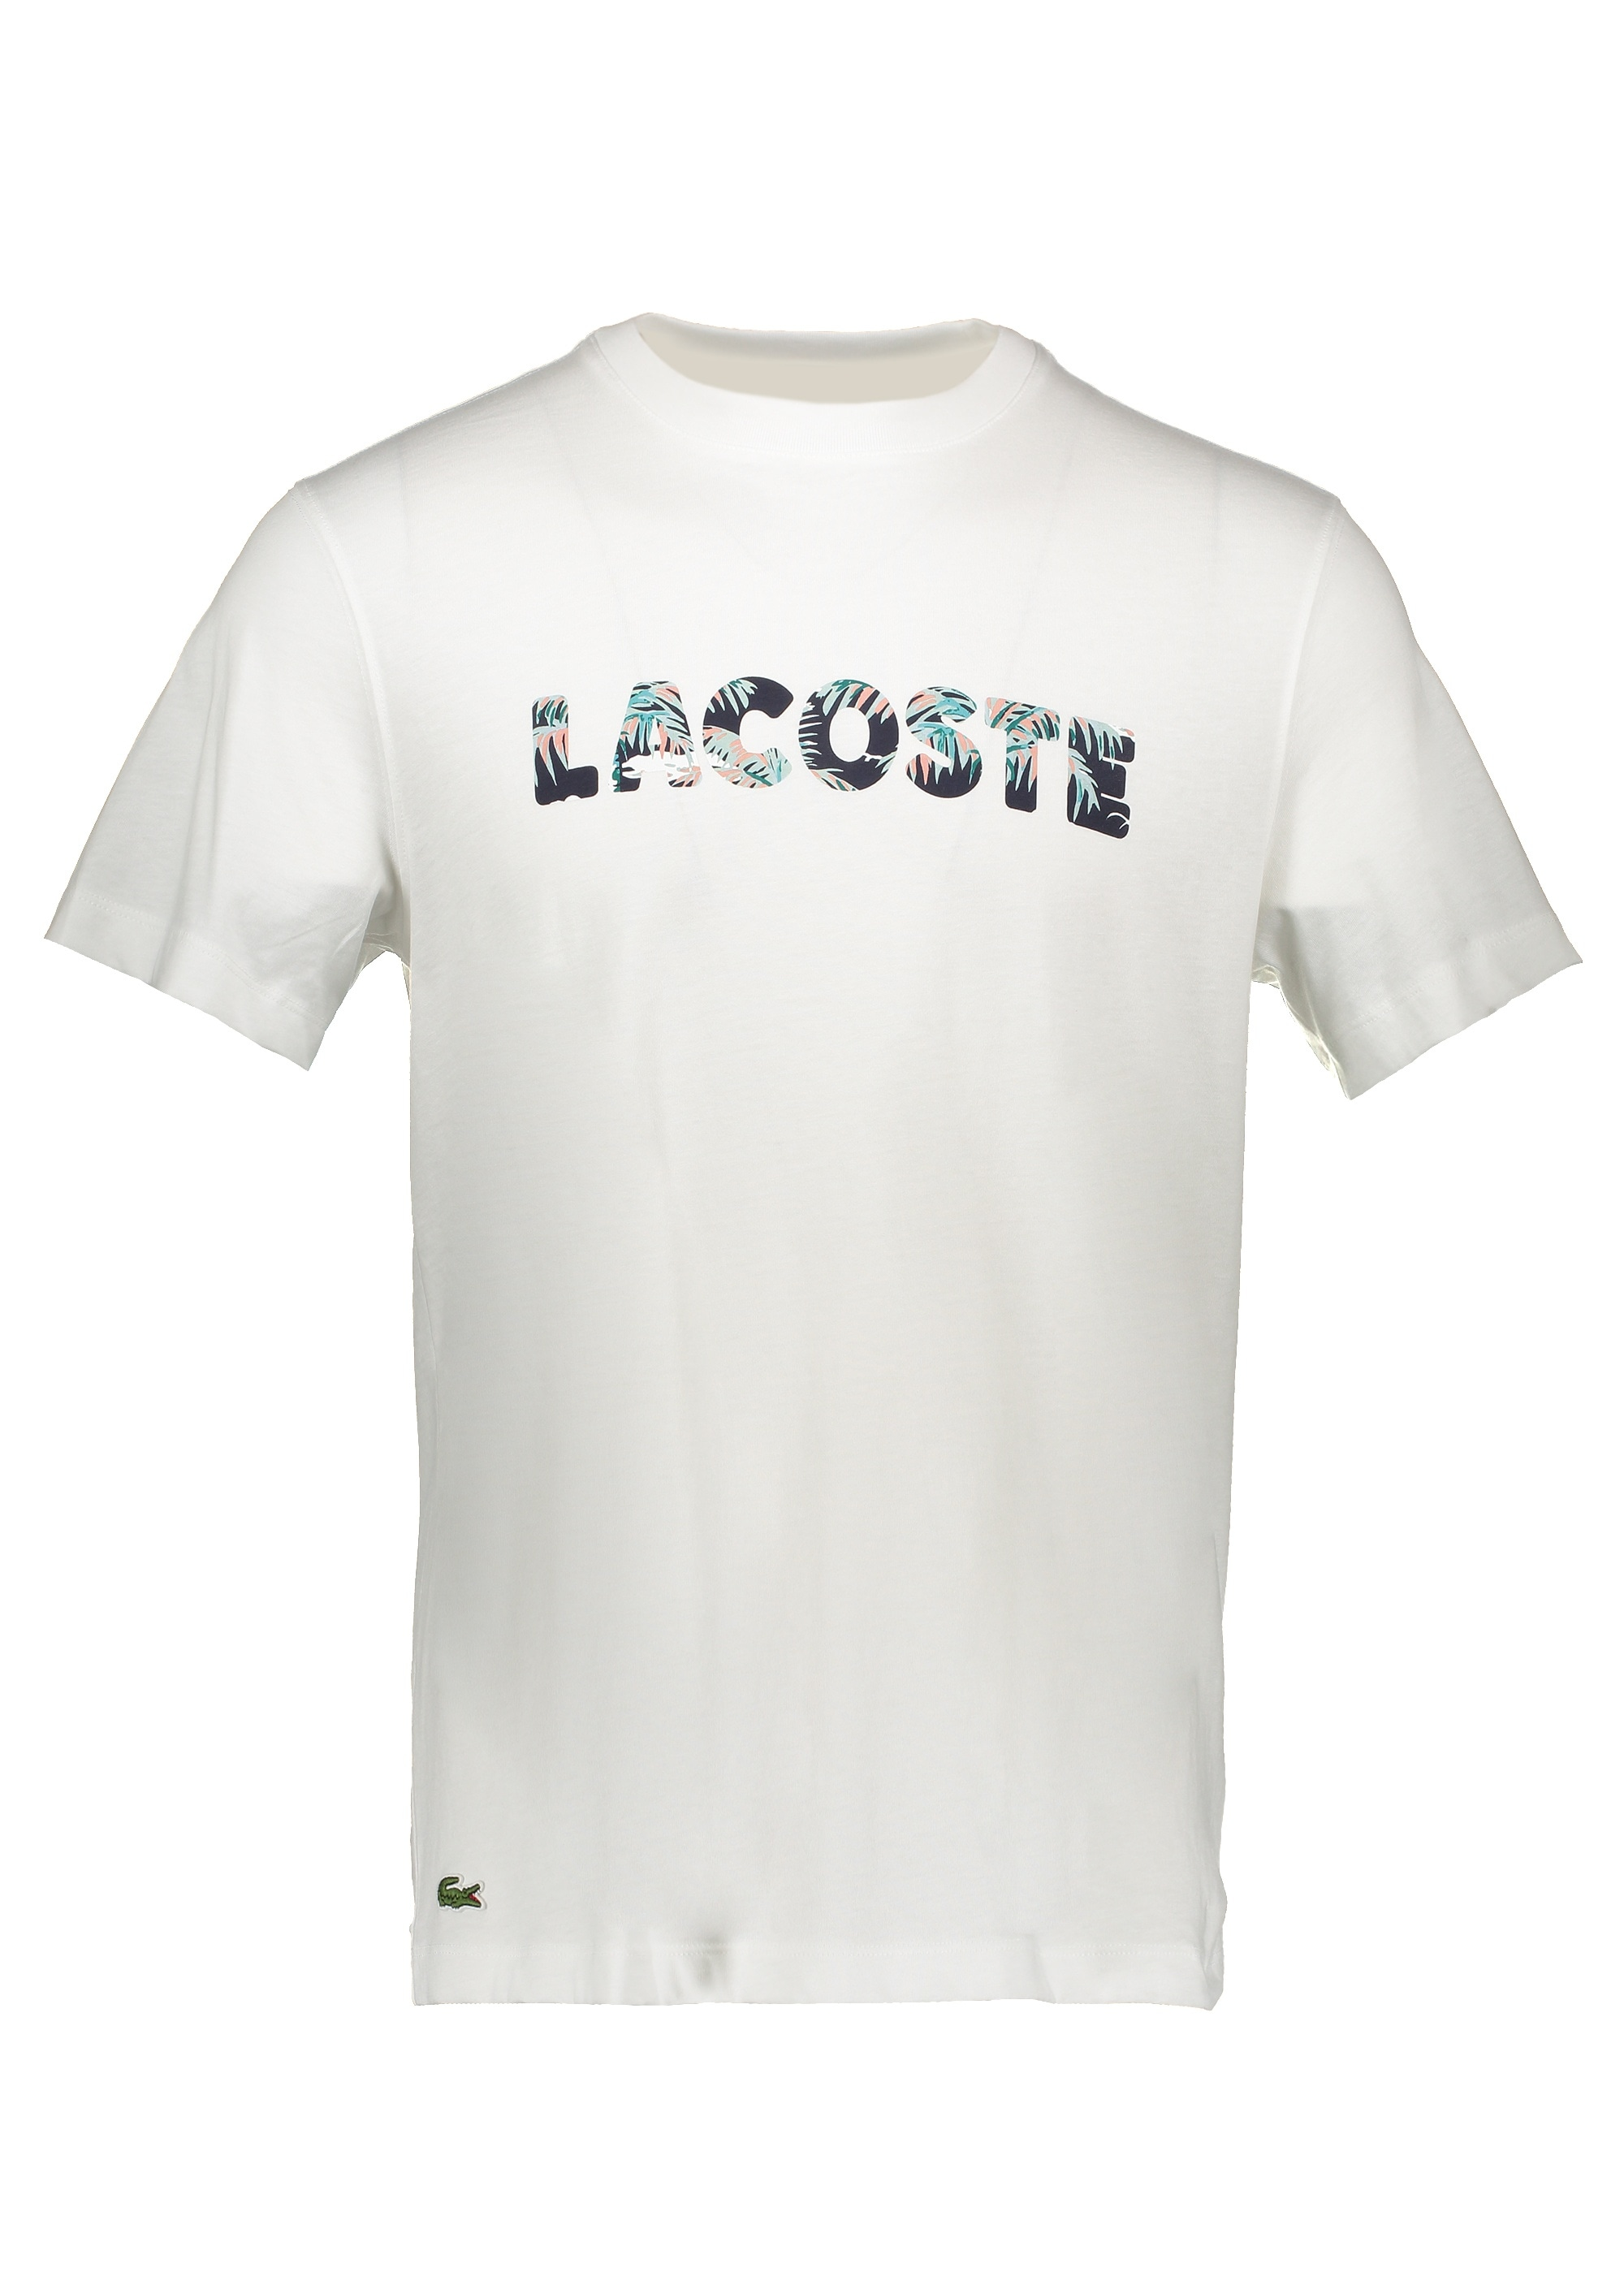 6b146d4771 Lacoste Print Logo Tee - White - T-shirts from Triads UK